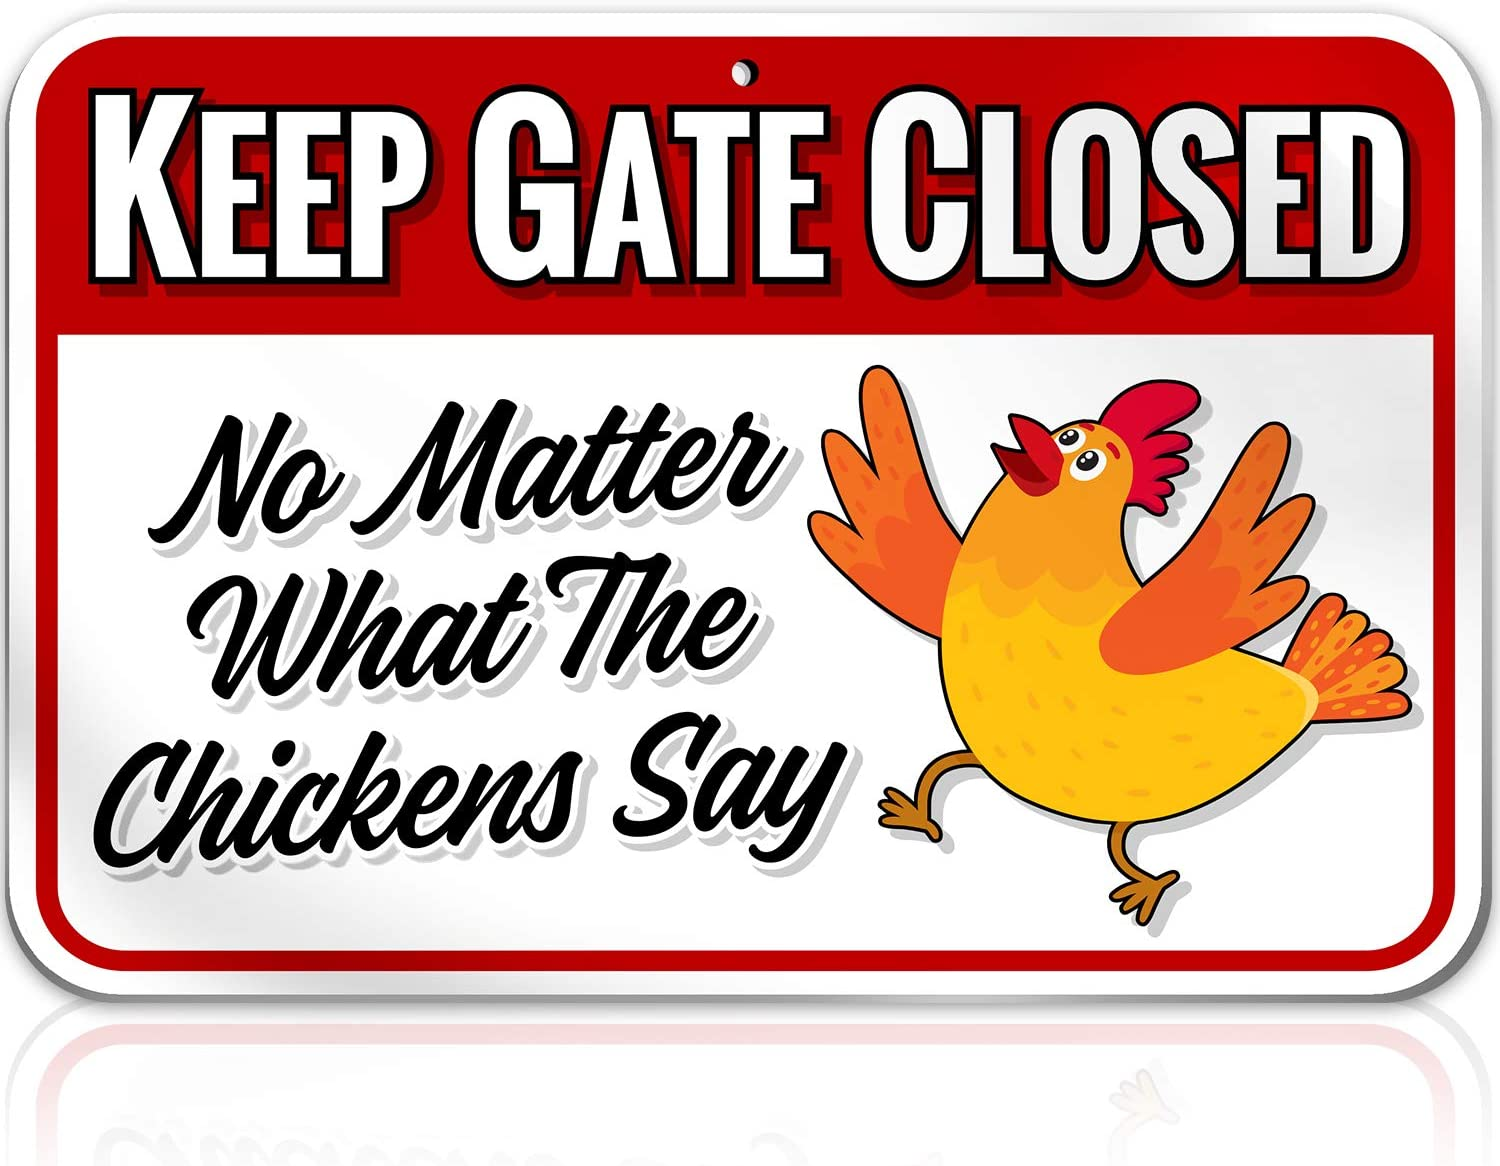 Chicken Warning Sign Danger Keep Gate Closed: No Matter what the Chickens Say - 9 inch x 12 inch - Funny Gag Gifts for Chicken Fan Lovers - 1/8 inch Thick PVC - Indoor / Outdoor - Chickens Plaque